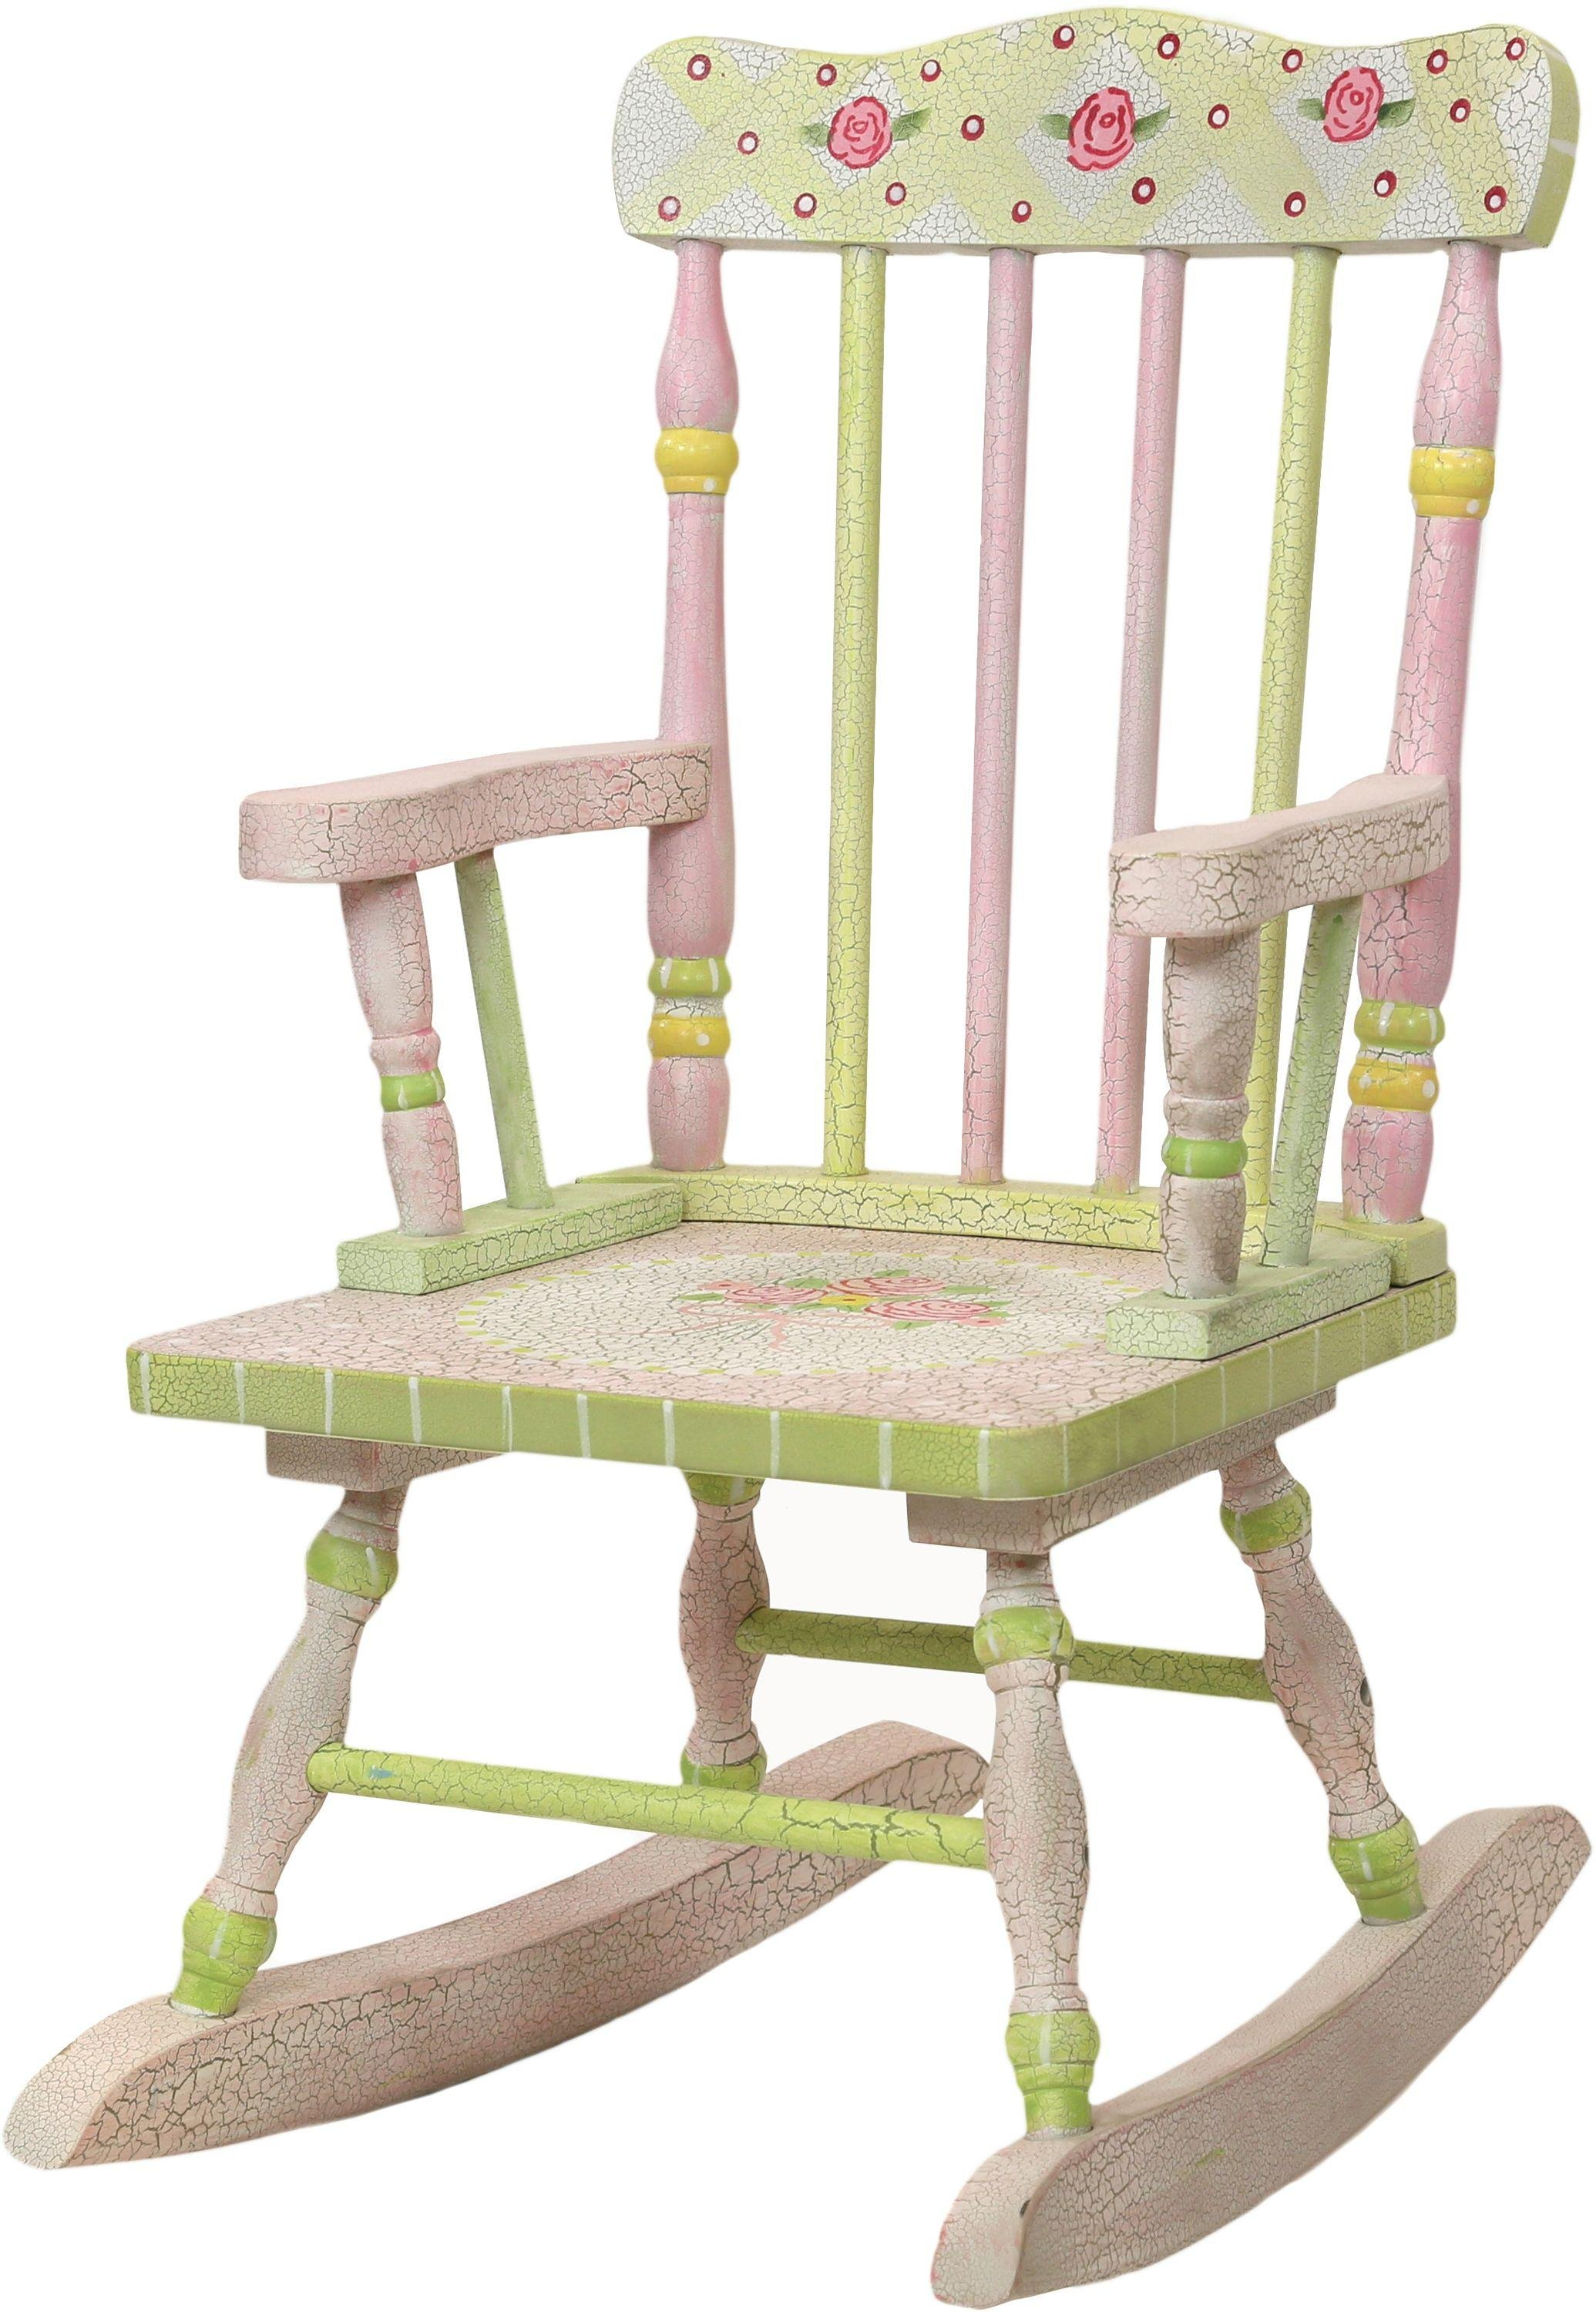 Fantasy Fields Crackled Rose Rocking Chair